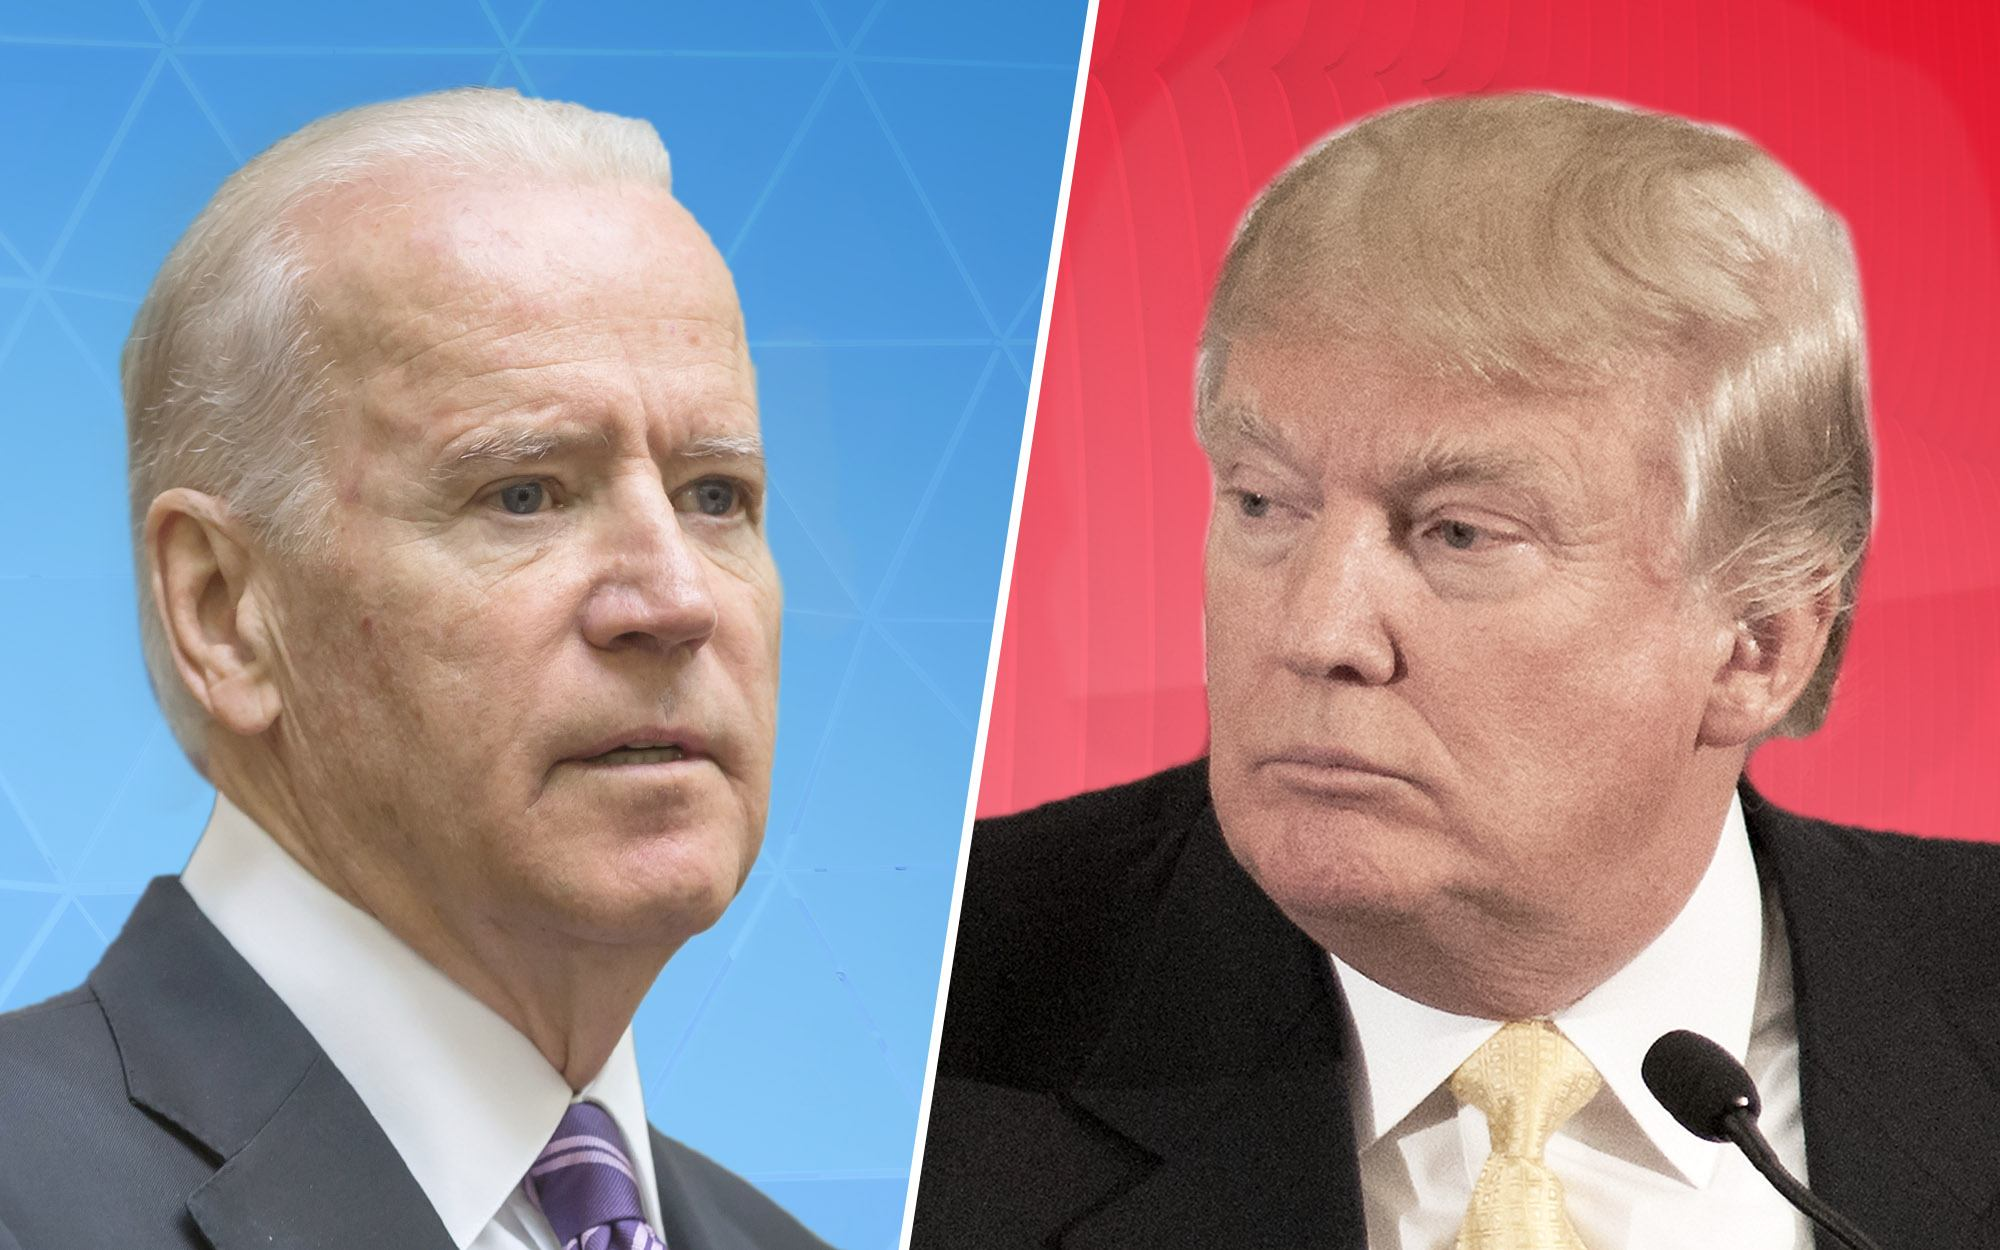 Trump Offers Hotel To Abandoned Guardsmen, Biden Offers Apology